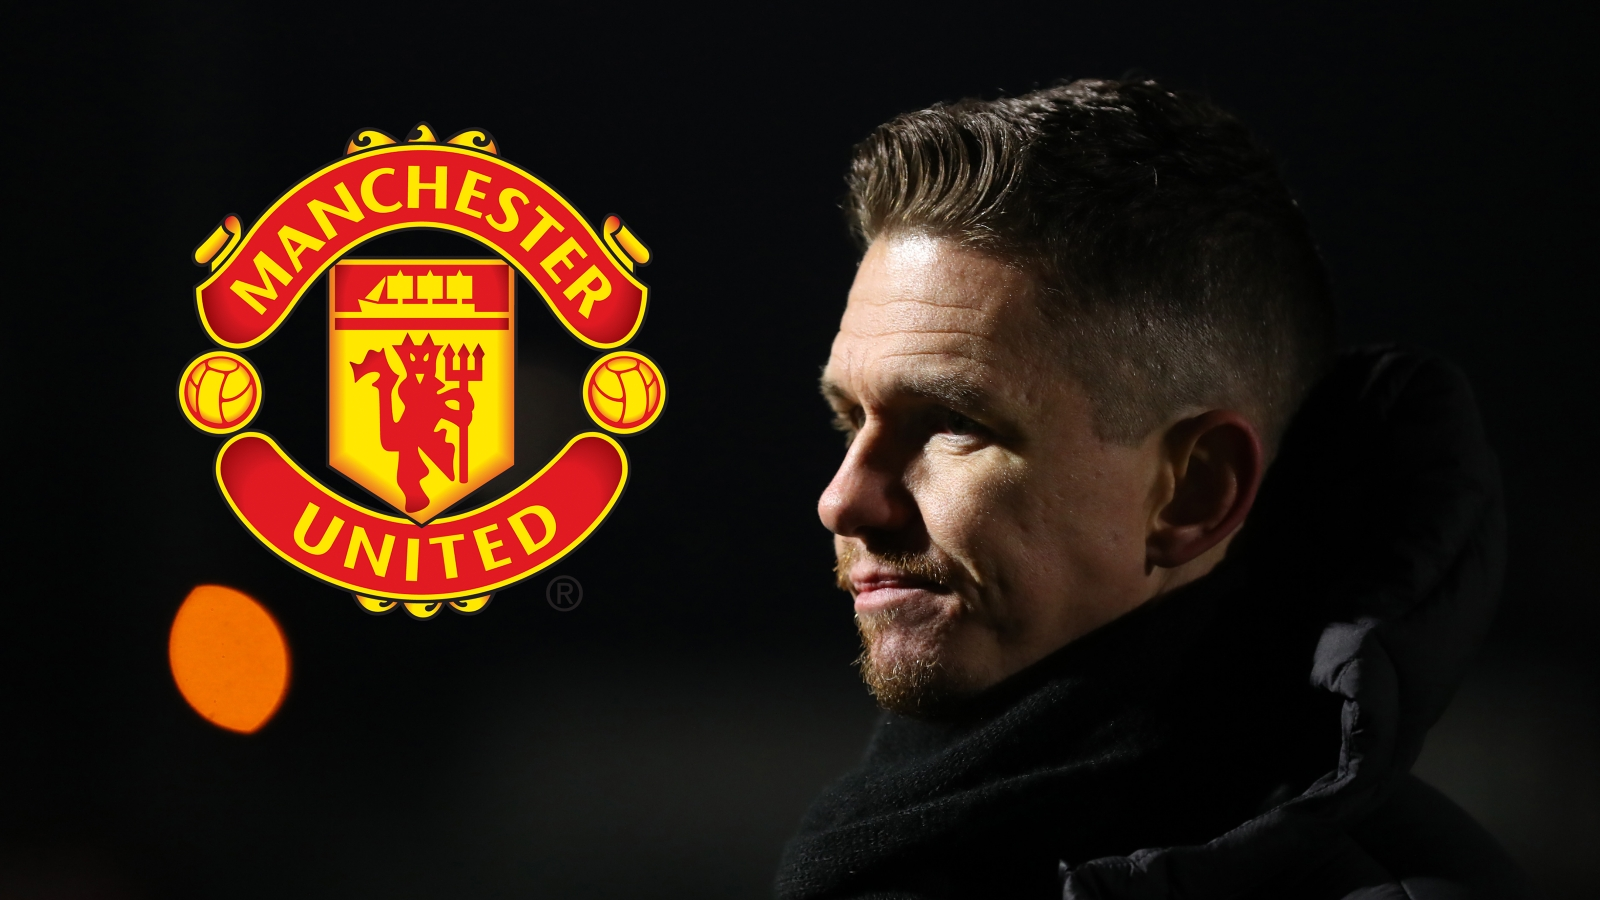 Manchester United appoint Marc Skinner as new head coach after Orlando Pride departure